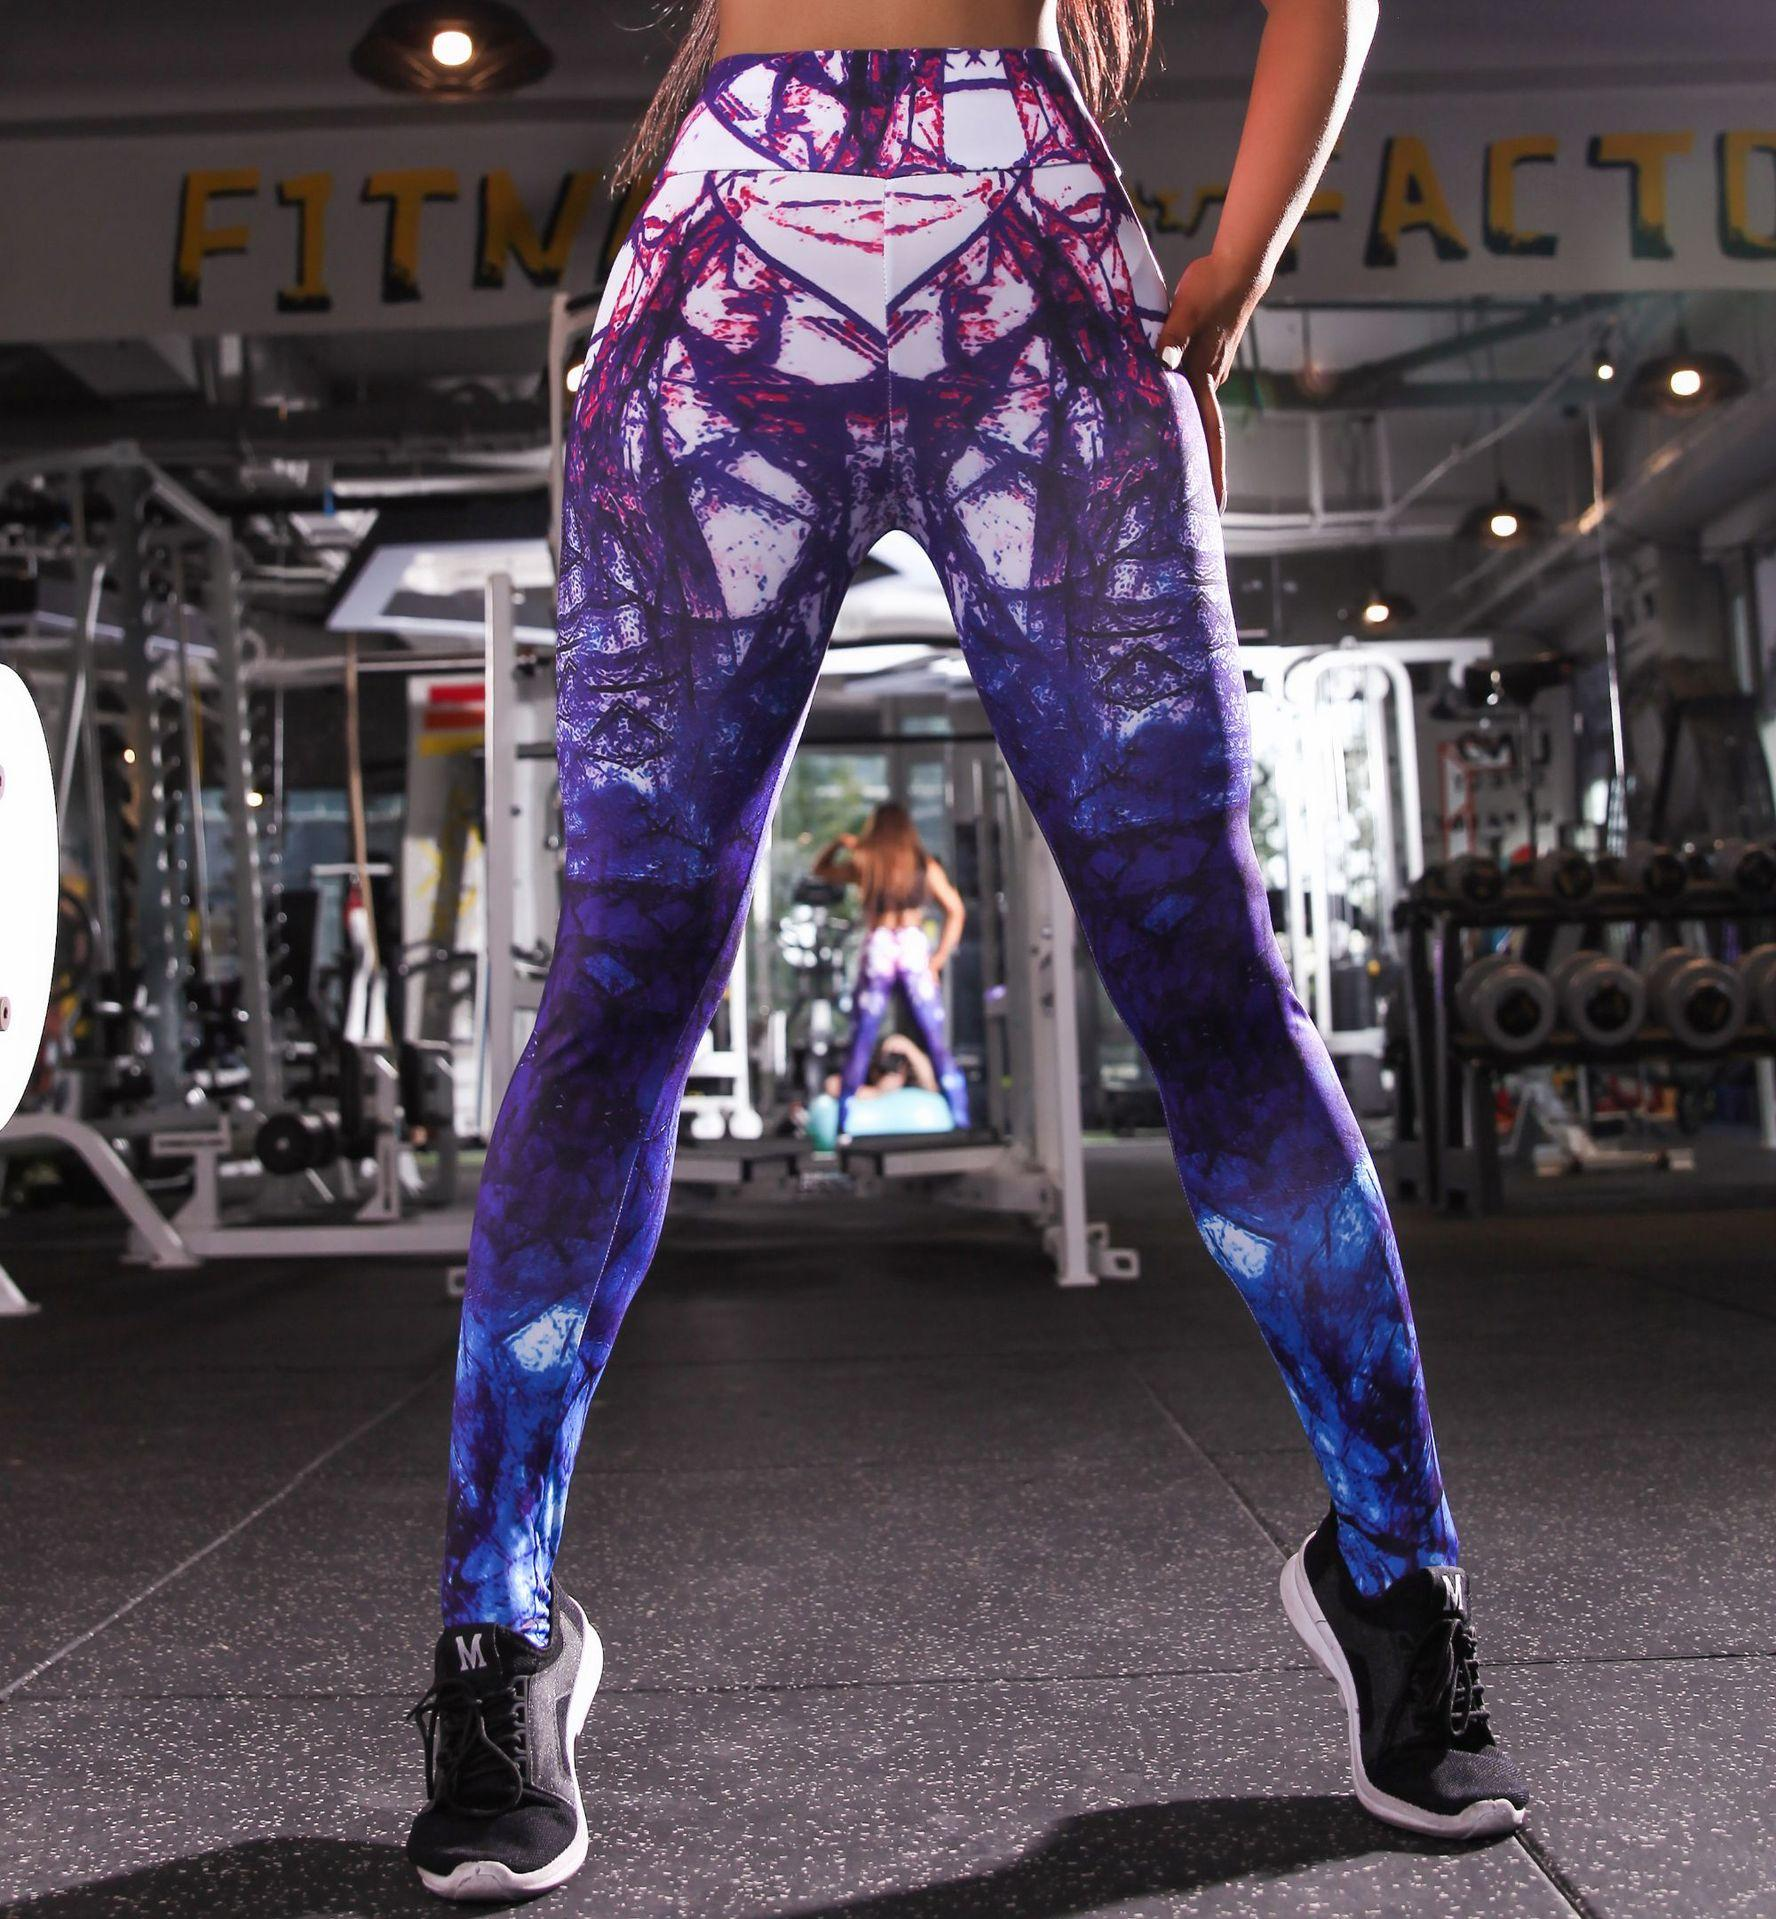 fefb10e5d443a 2019 2019 New Printed Gym Yoga Pants Fashion Sexy Mixed Color Fitness  Leggings High Waist Digital Casual Sweatpants From Seanliugao, $10.05 |  DHgate.Com